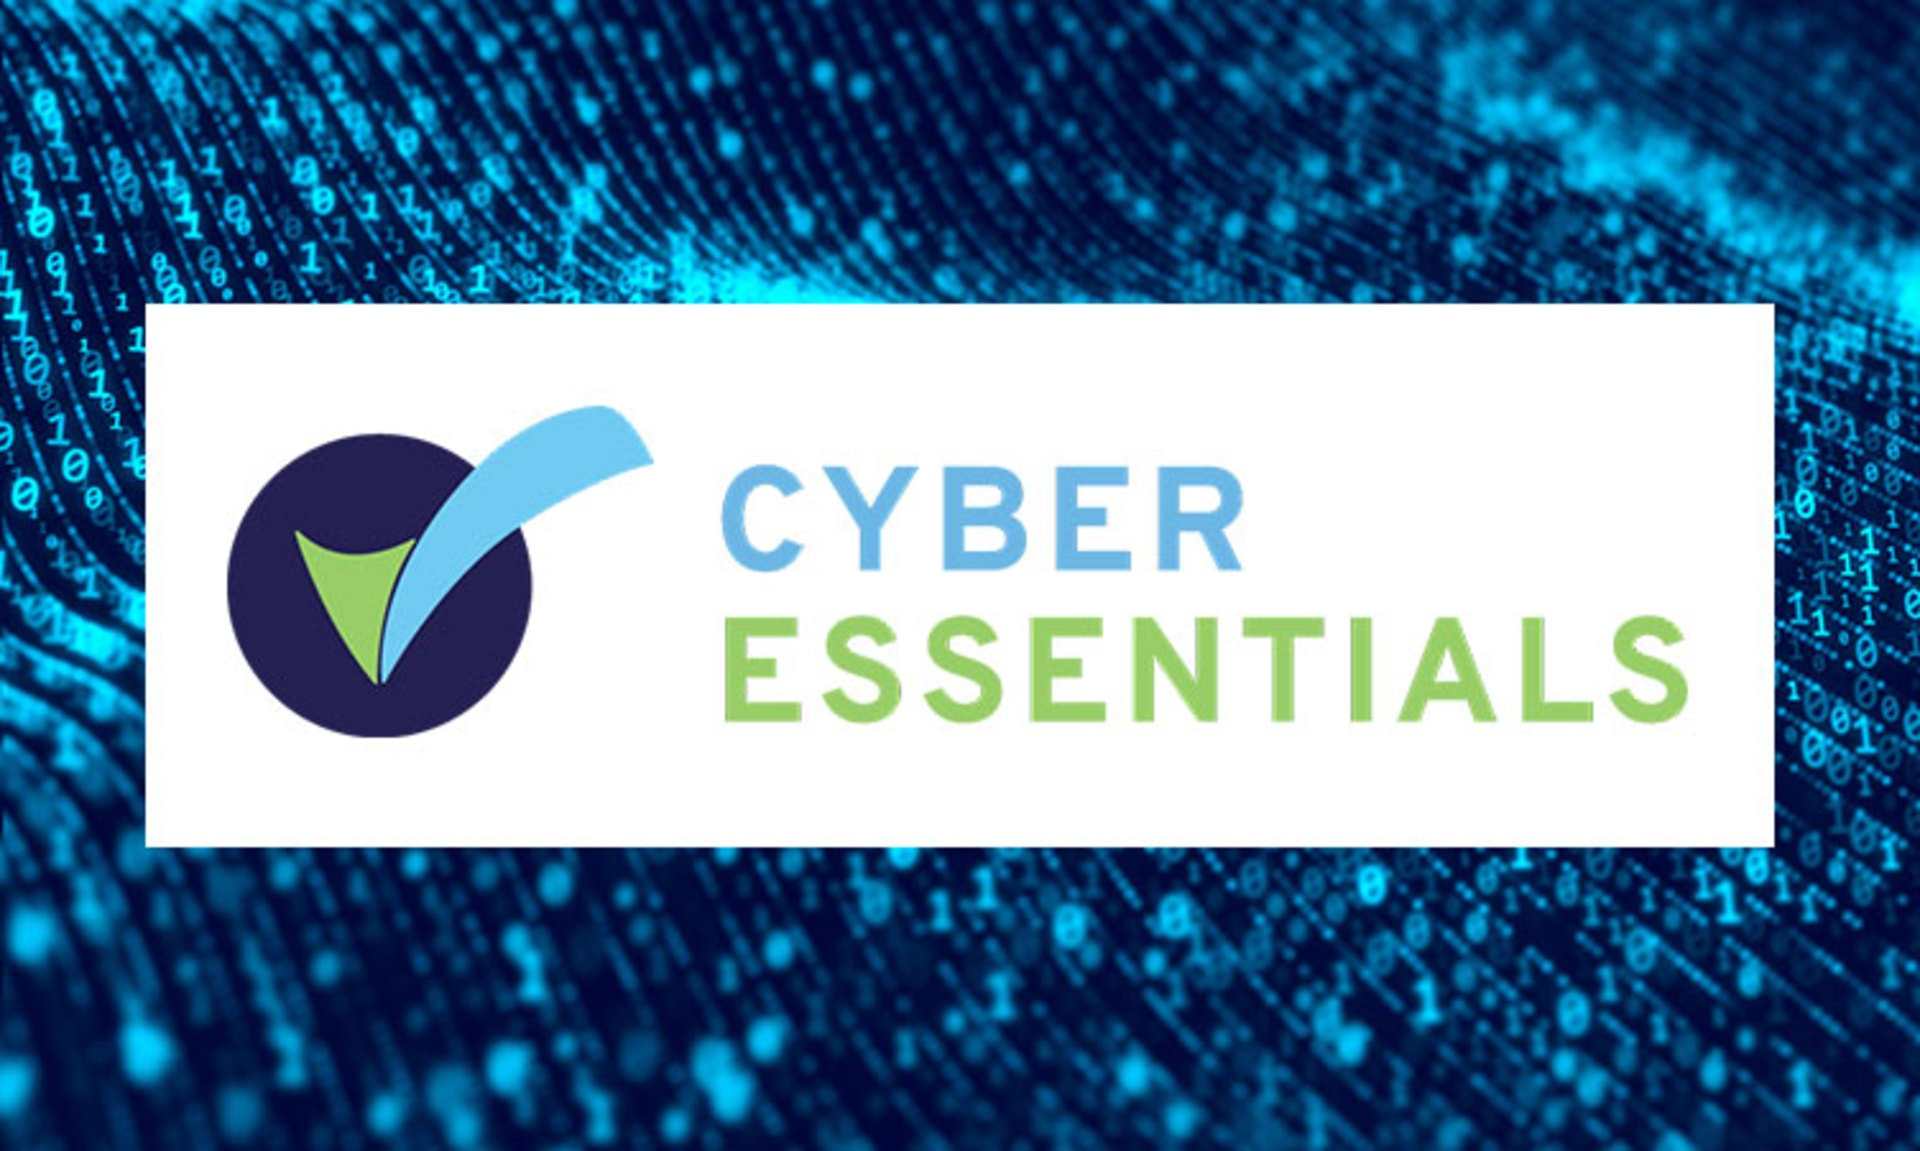 Share peterborough the remark group have been awarded the cyber featured image forthe remark group have been awarded the cyber essentials crest certification xflitez Gallery